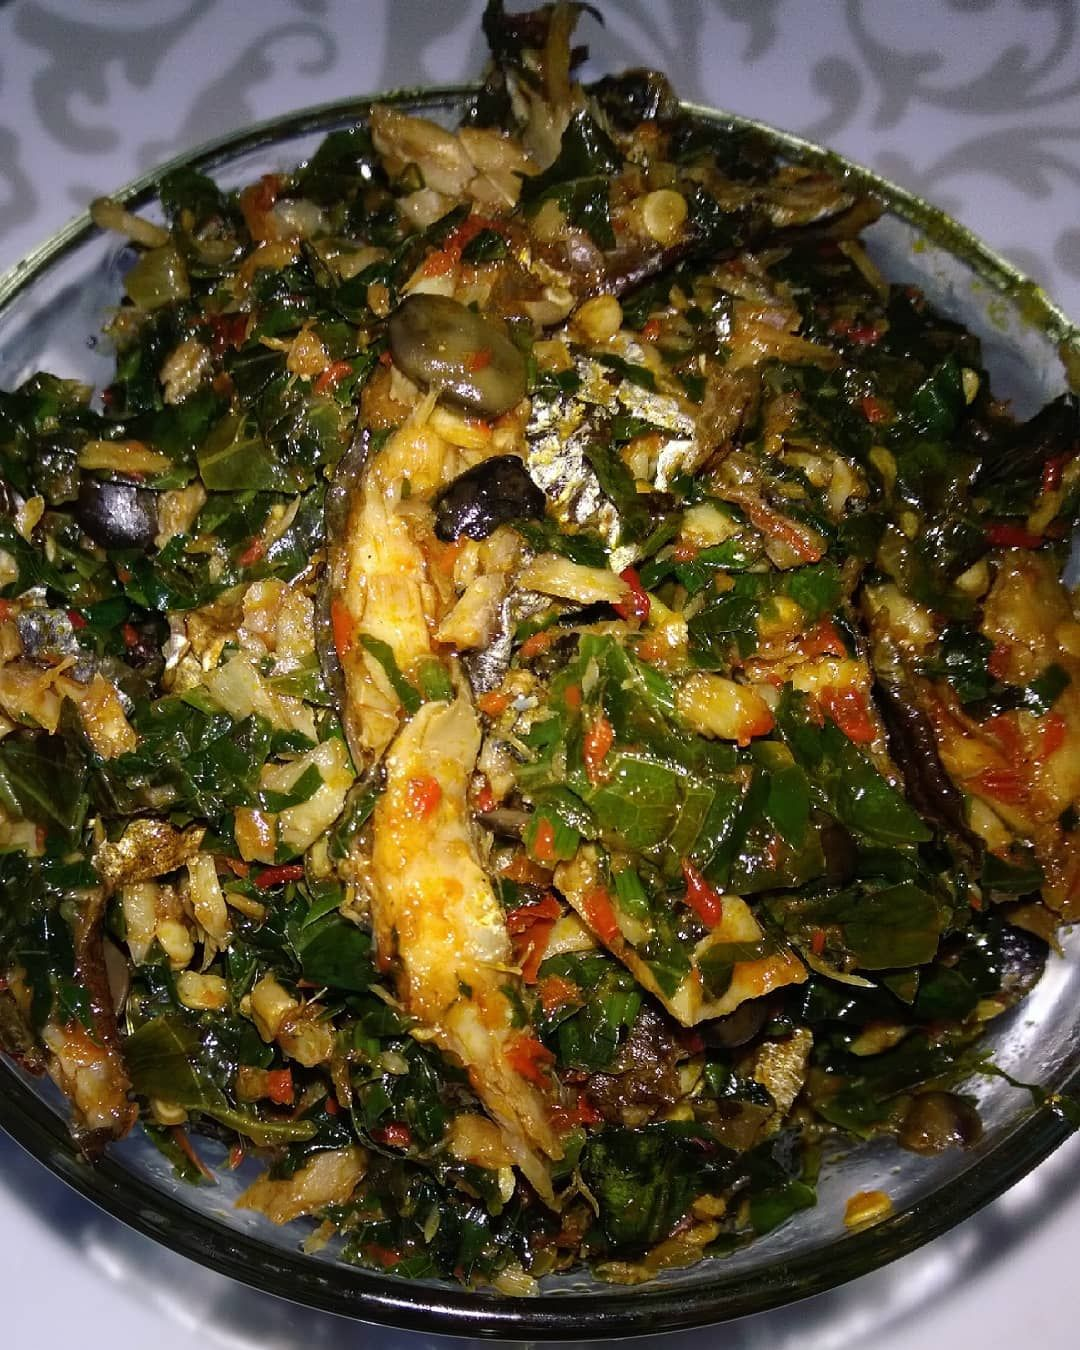 Good morning beautiful people!  Introducing our Ugwu&Uziza Eforiro.  It is an extreme deliciousness! You can have it with all swallows, rice, yam, beans, anything or alone.  call us today on, 📞08160377616  Email- crunchiznchewiz@